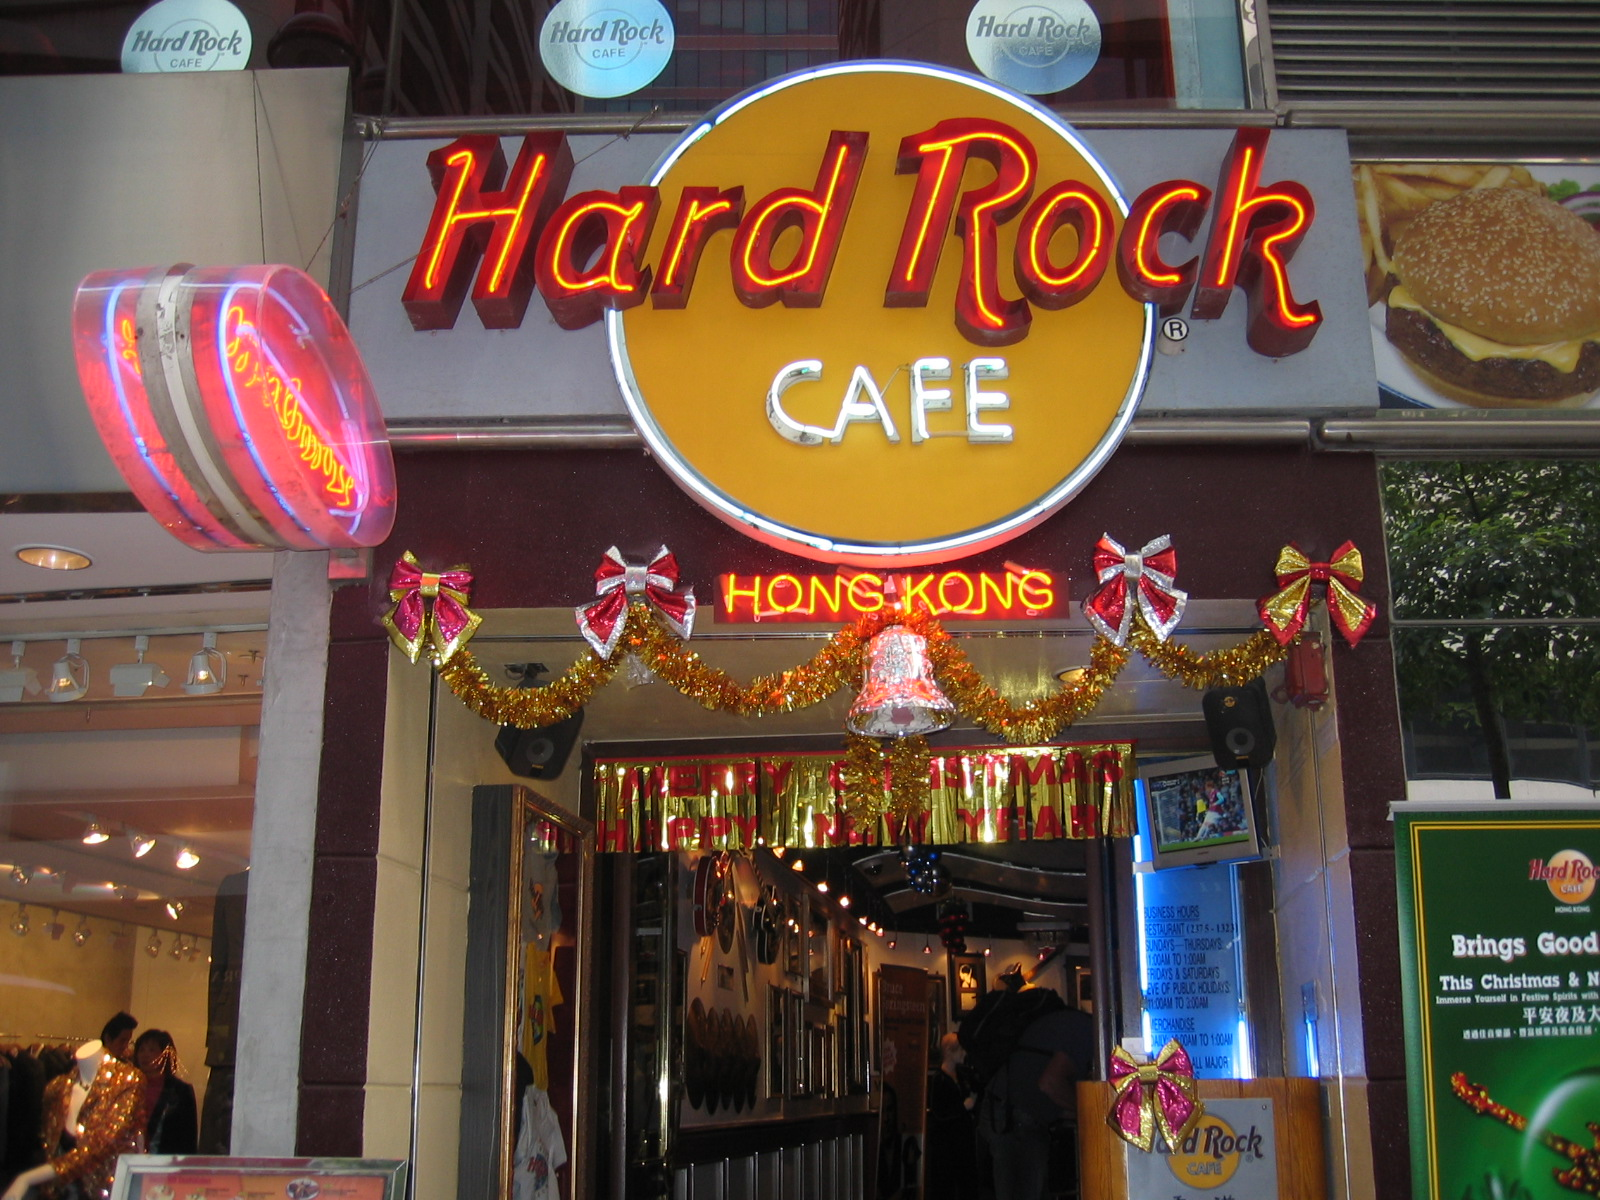 Hard Rock Cafe Song List